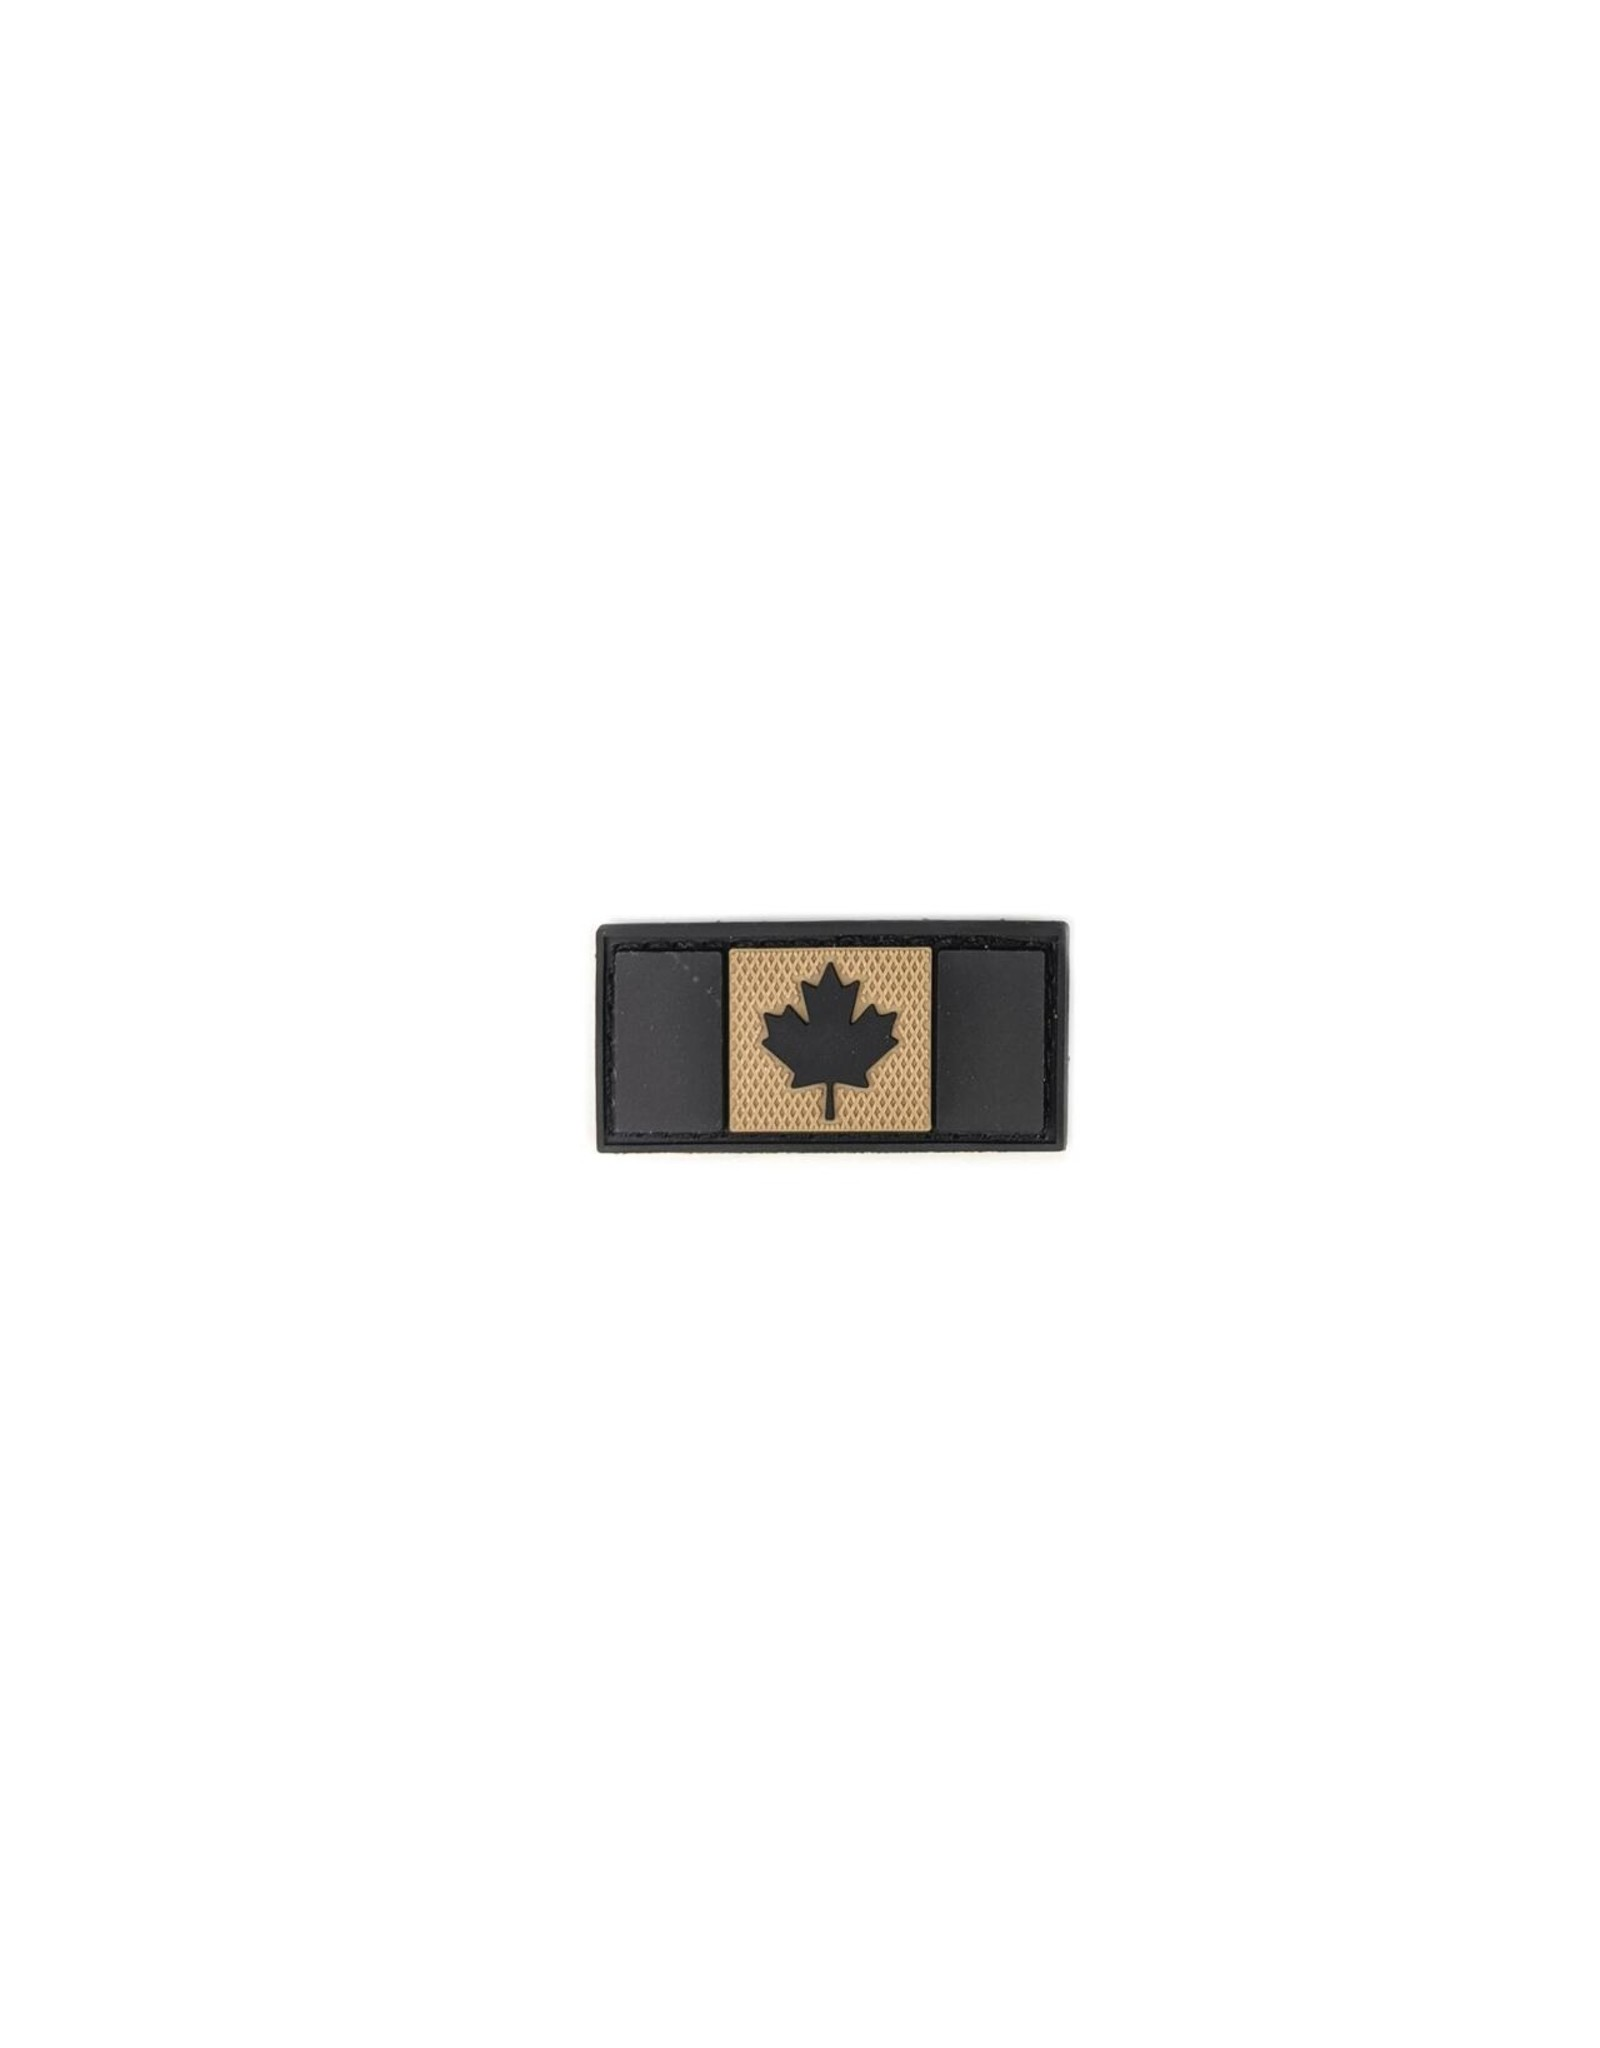 TIC Patch - CANADA FLAG 1X2 T&T